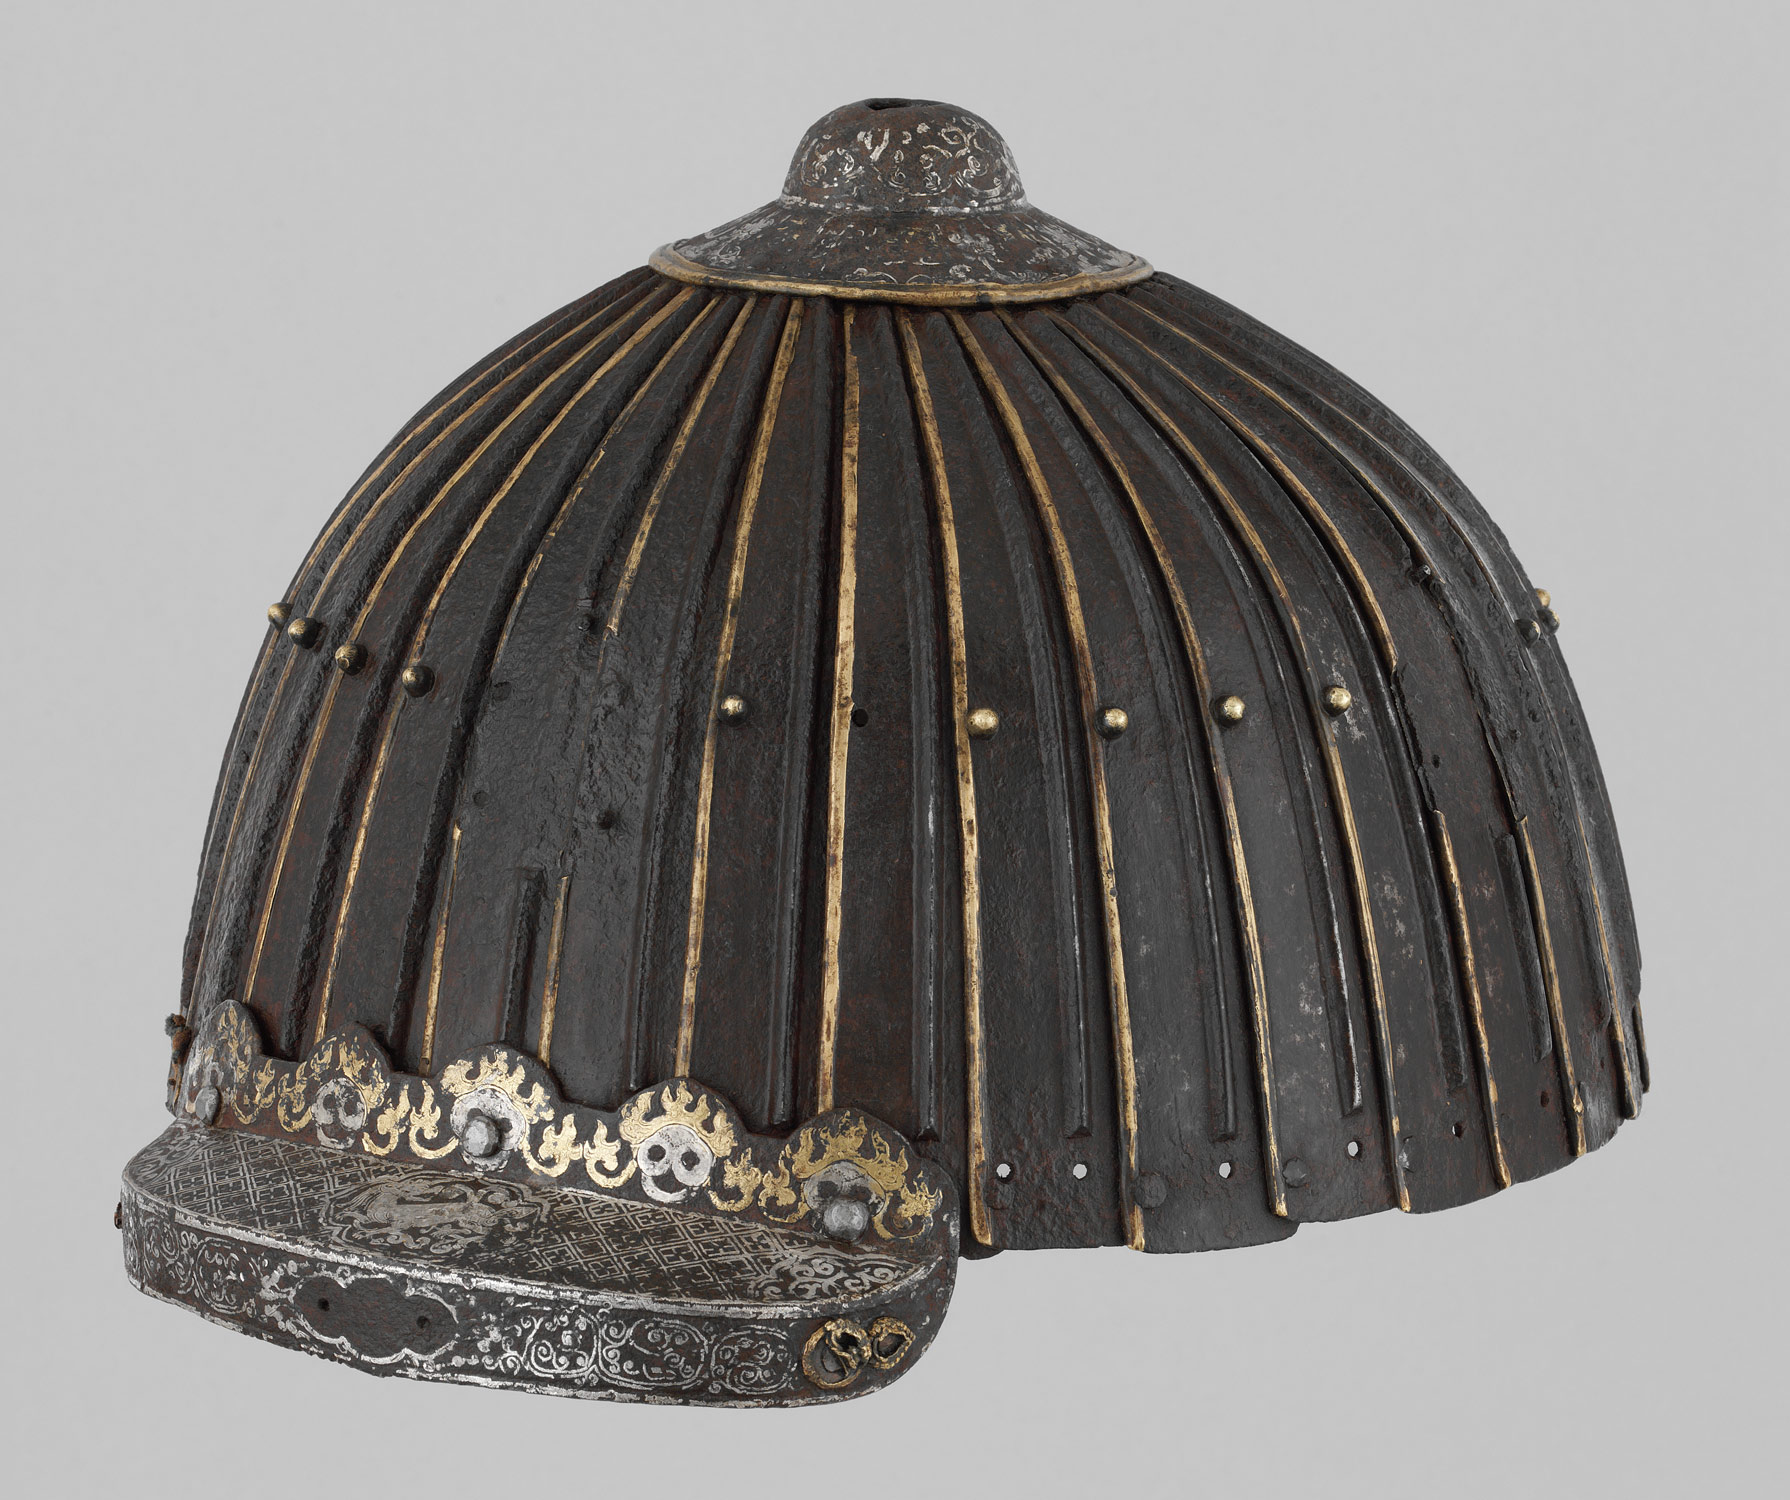 Multiplate helmet of thirty-two lames